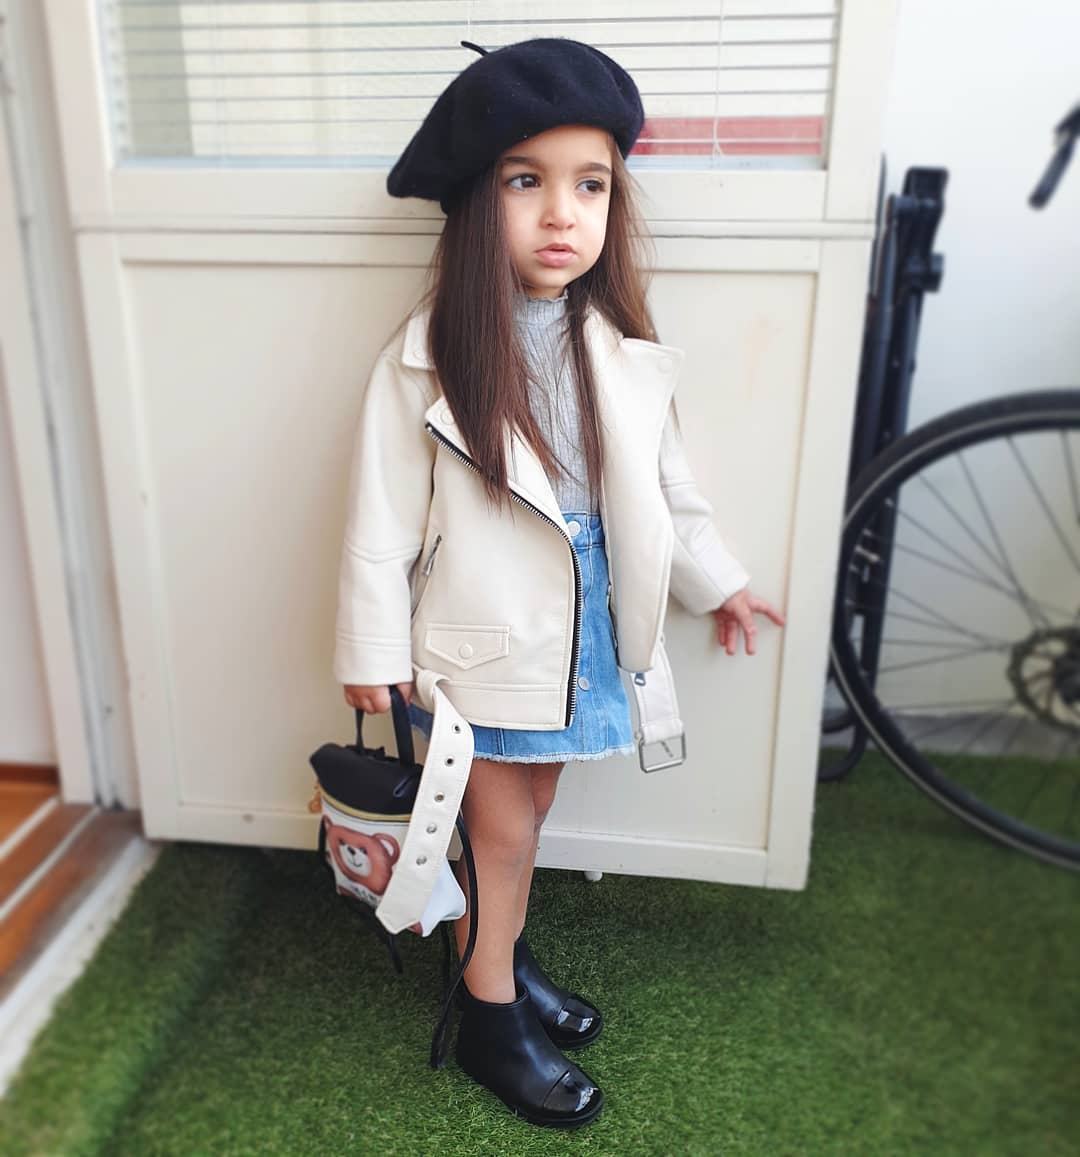 Kids Leather Jackets Girls 2019 Spring Autumn Coats and Motorcycle Toddler Boys Outerwear